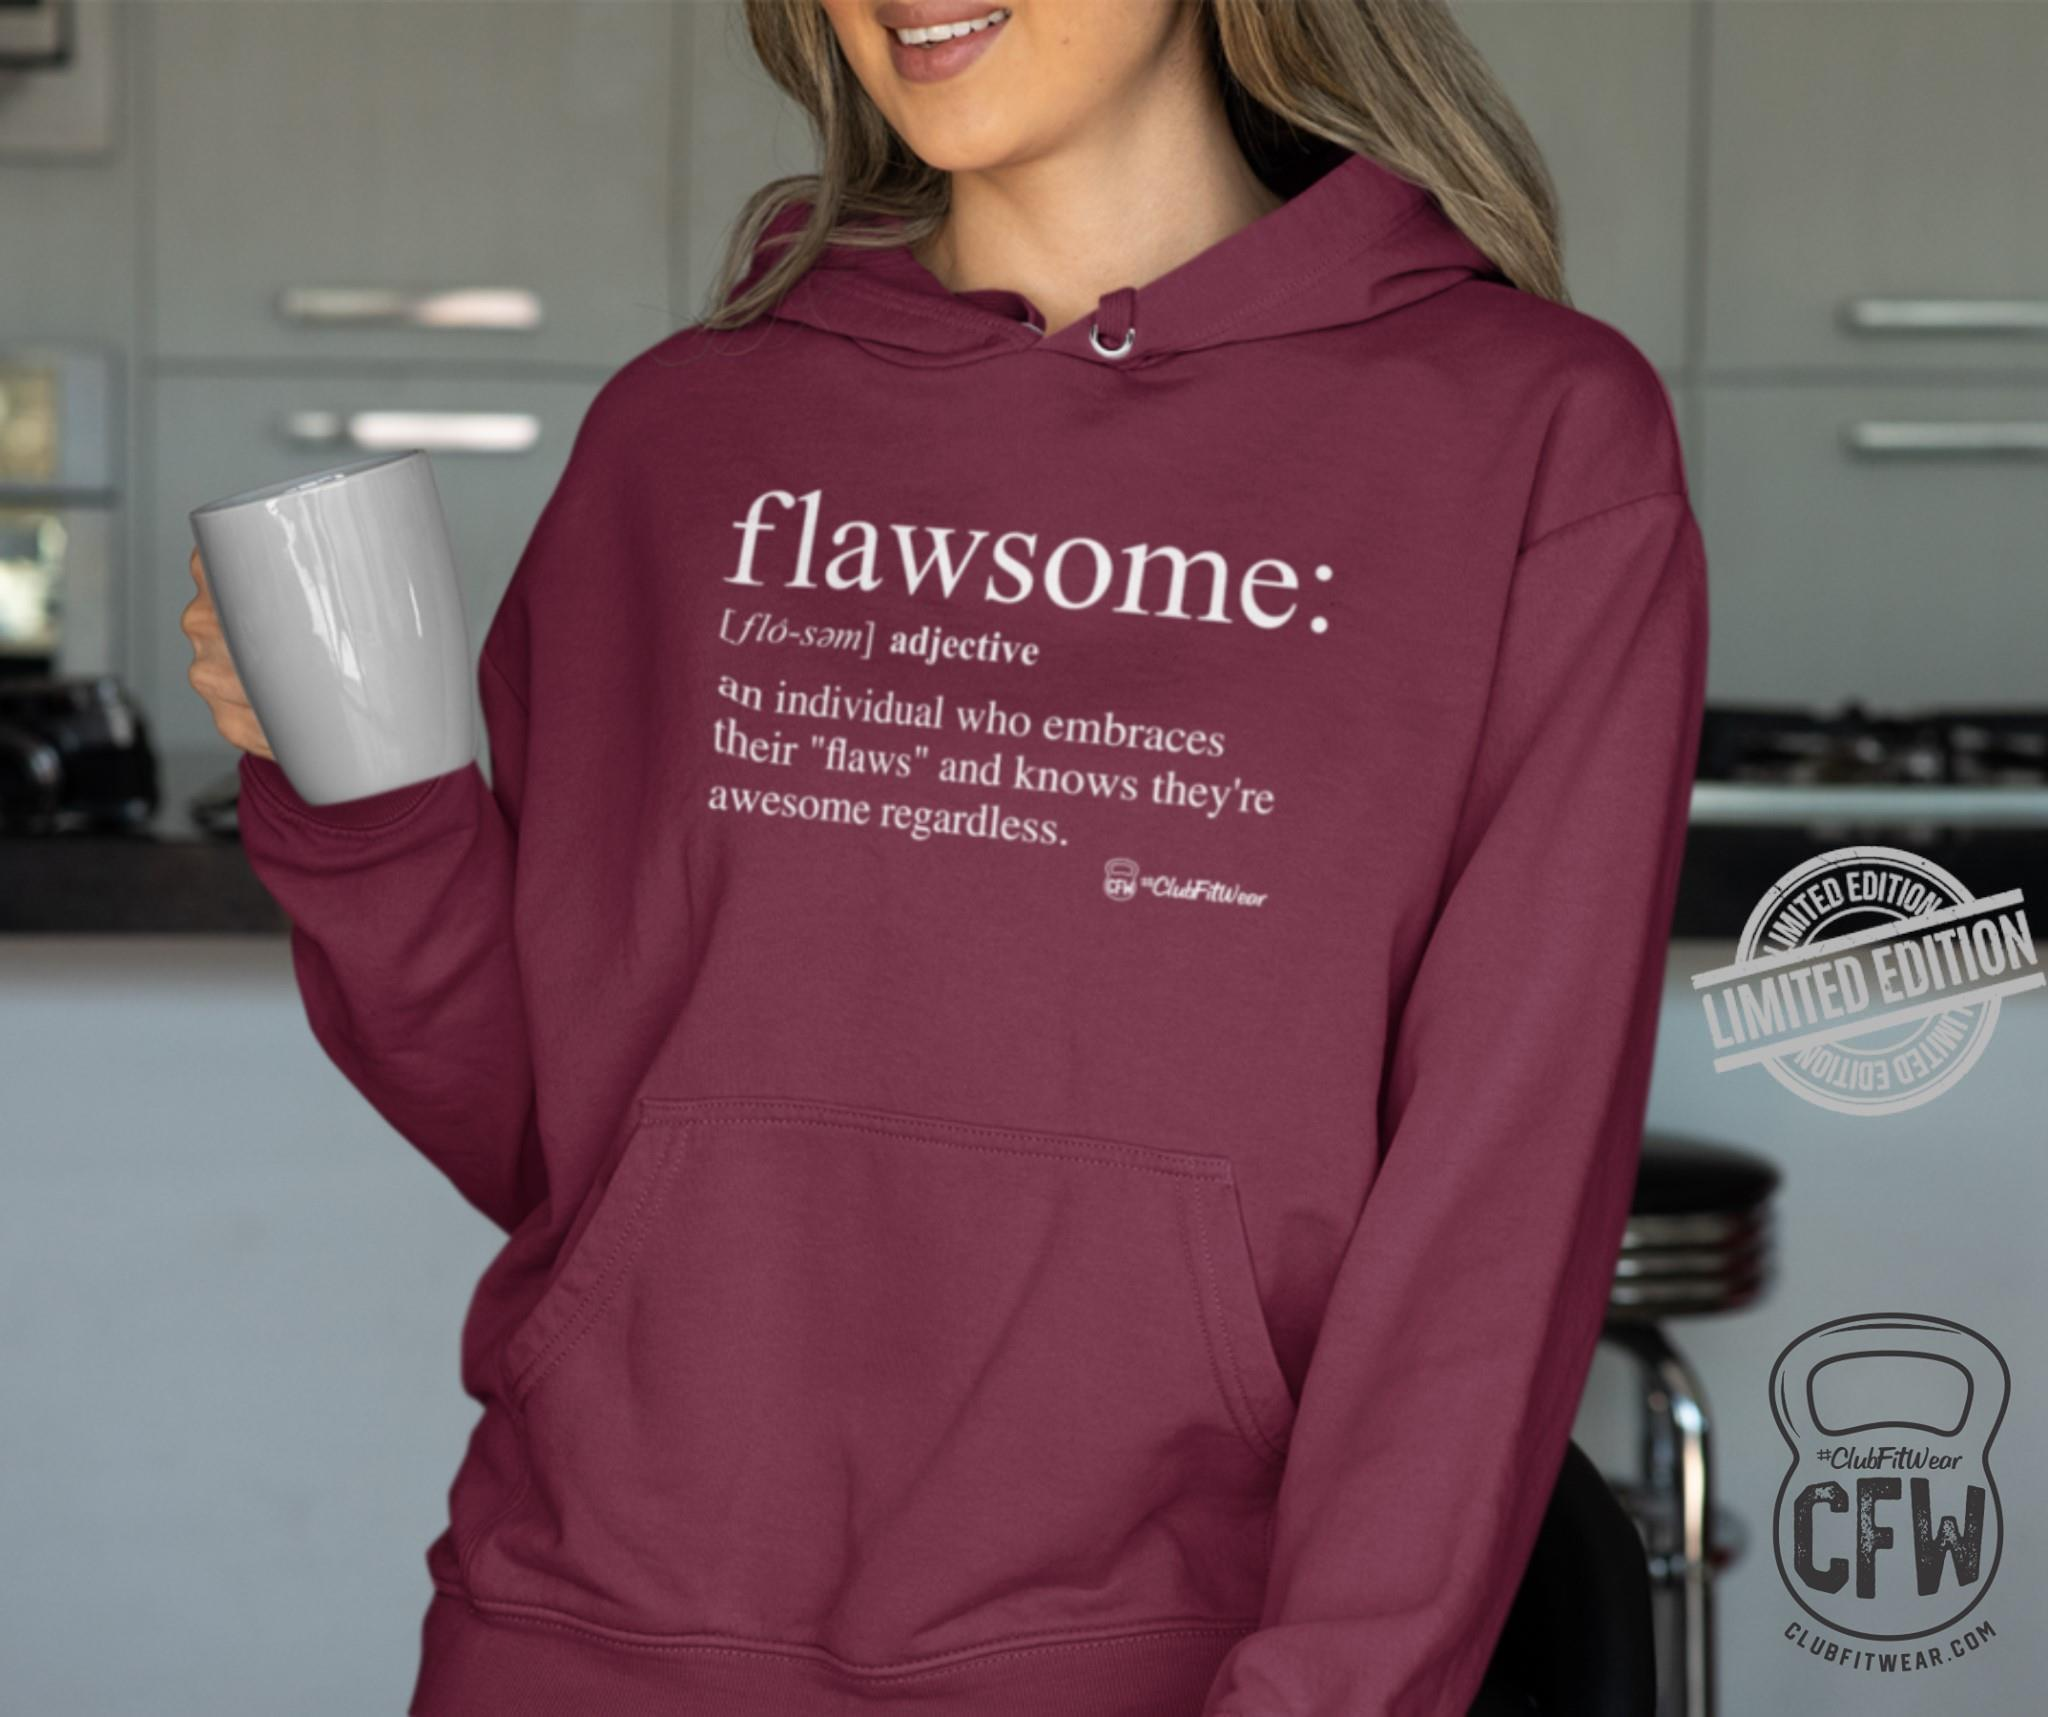 Flawsome An Individual Who Embraces Their Flaws And Knows They're Awesome Regardless Shirt